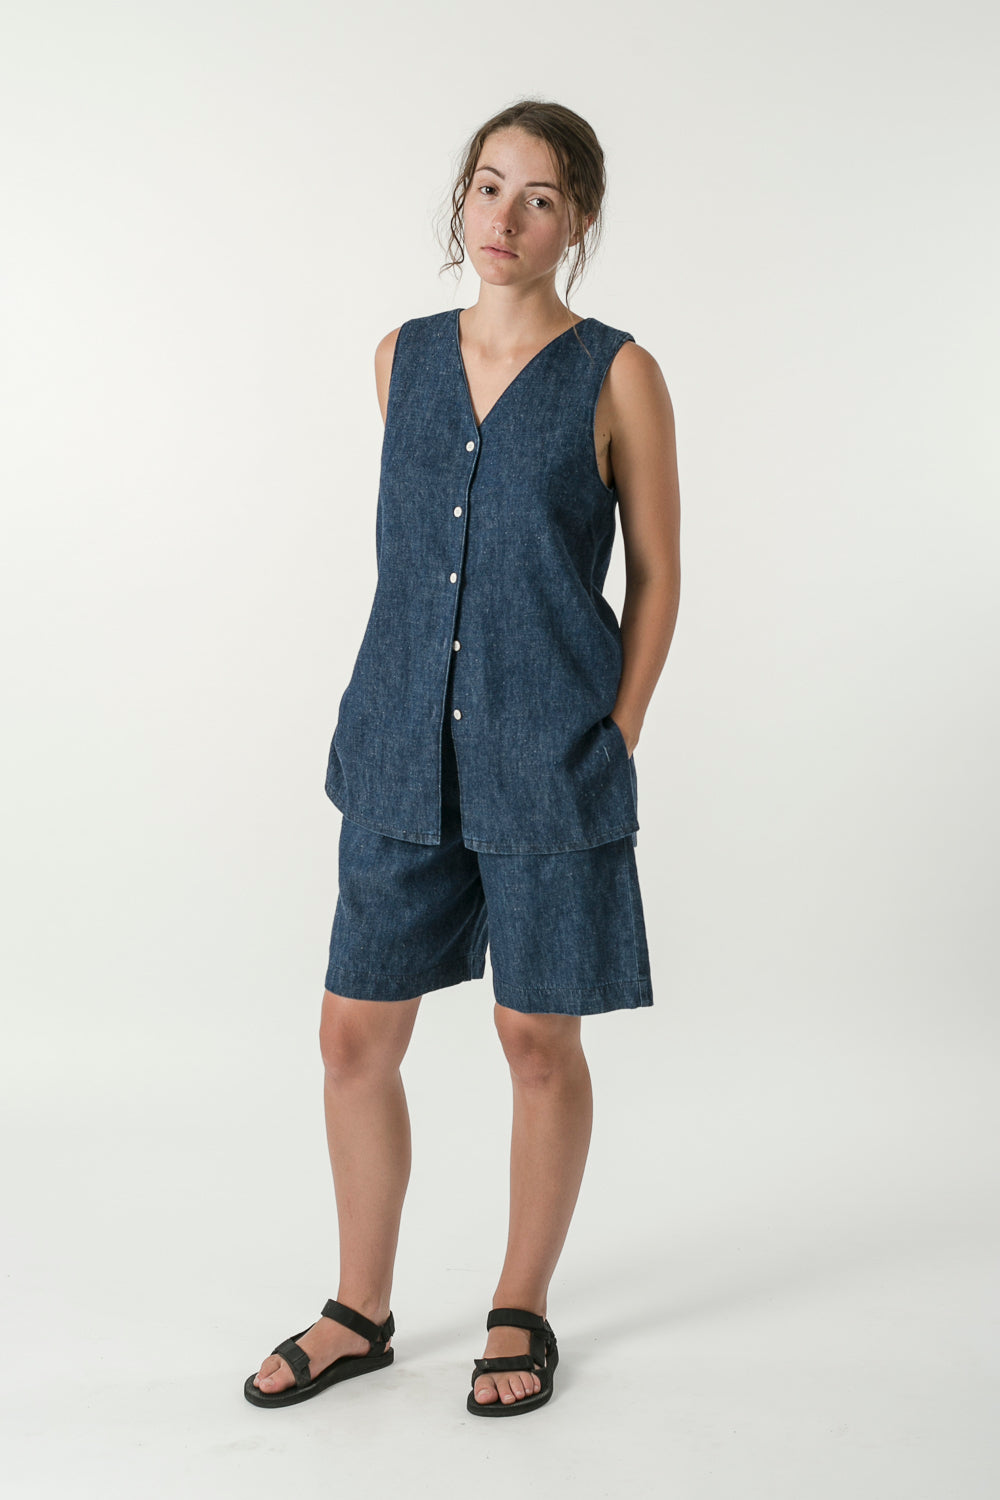 UNISEX HEMP DENIM BOARD SHORTS